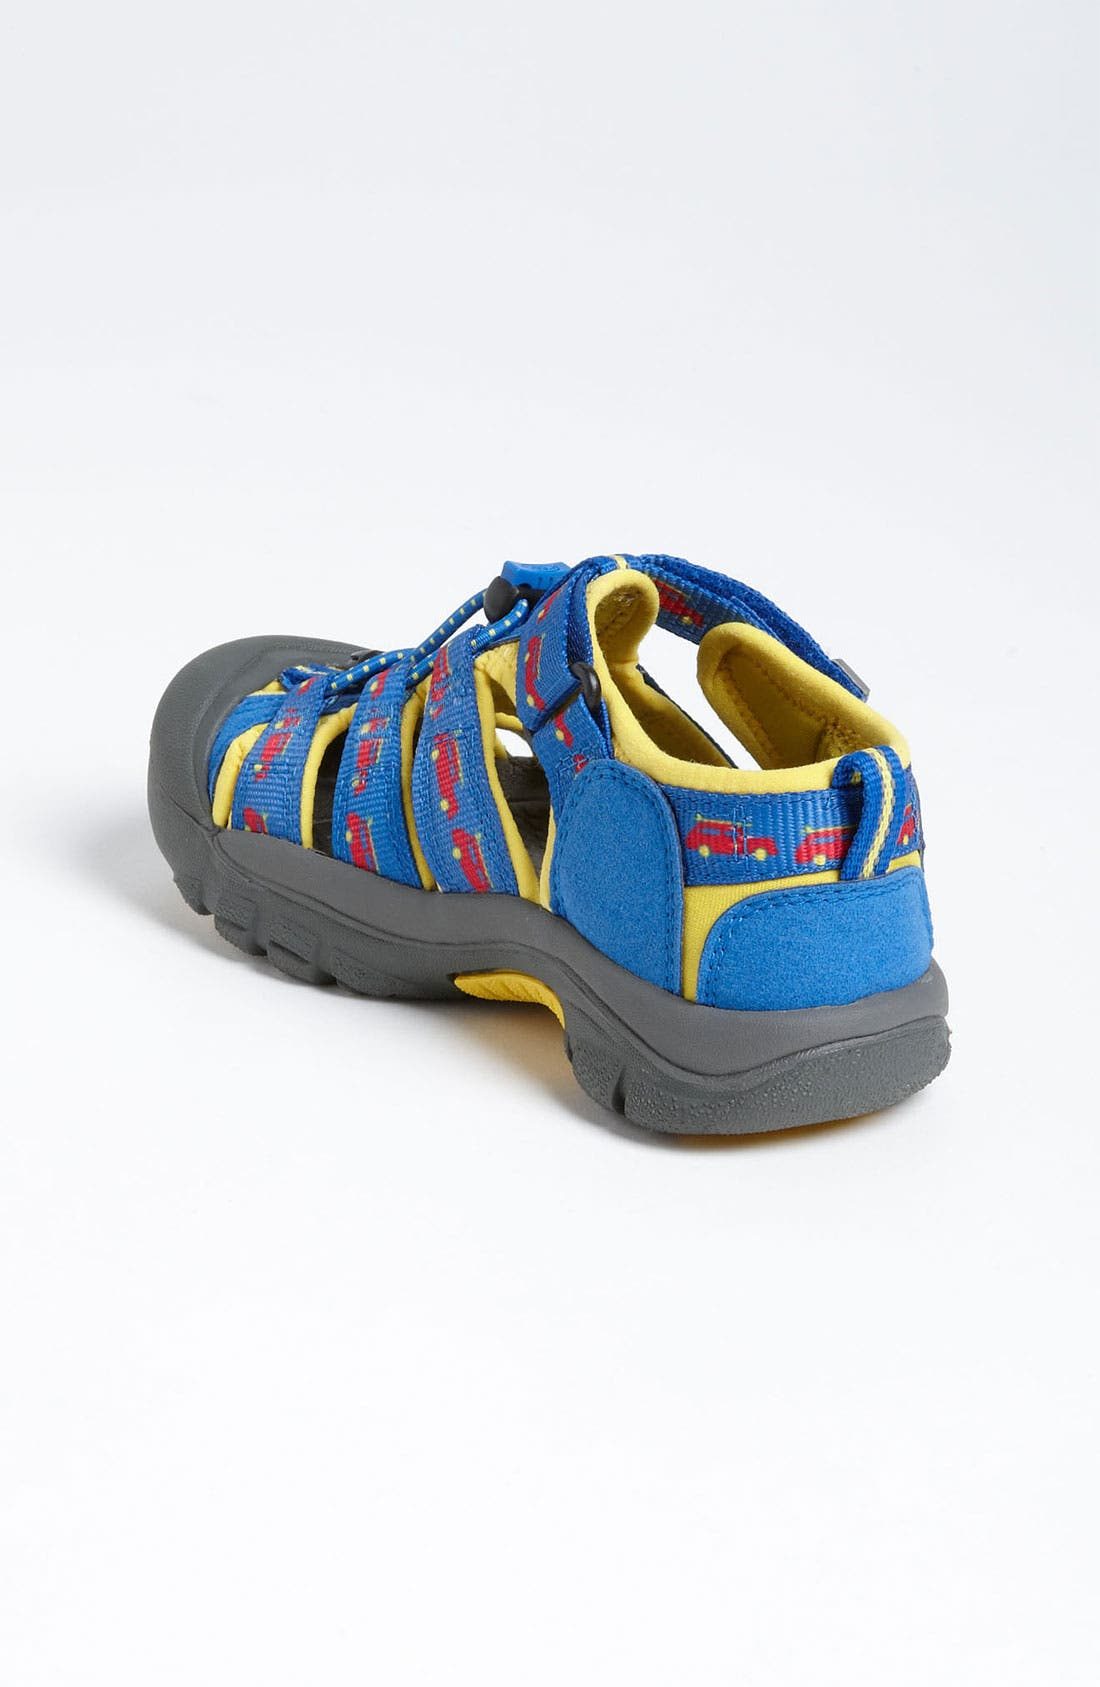 Alternate Image 2  - Keen 'Newport H2' Sandal (Toddler & Little Kid)